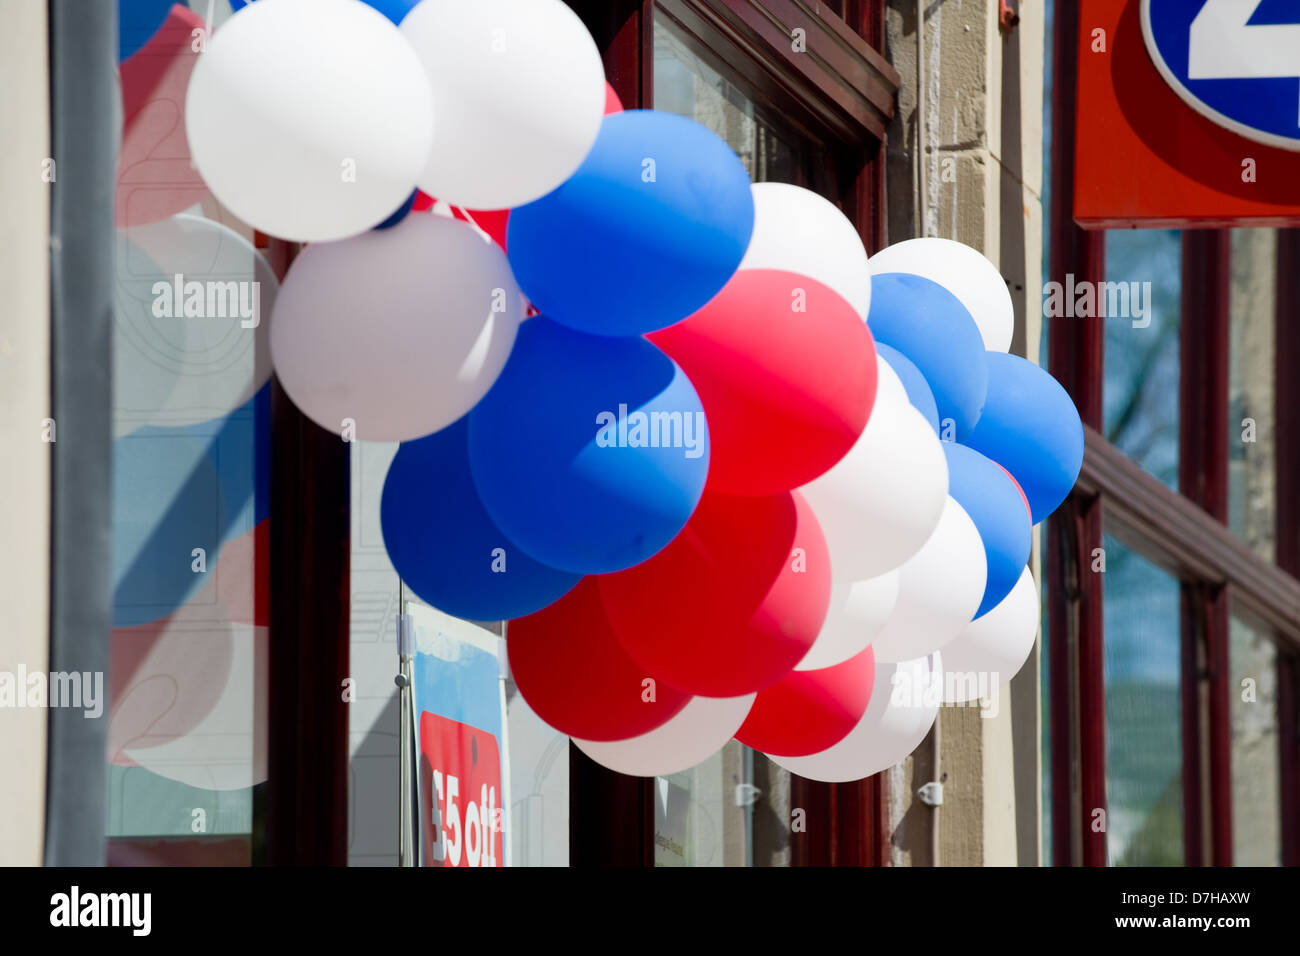 Balloons outside a high street store for an in-store promotion. - Stock Image